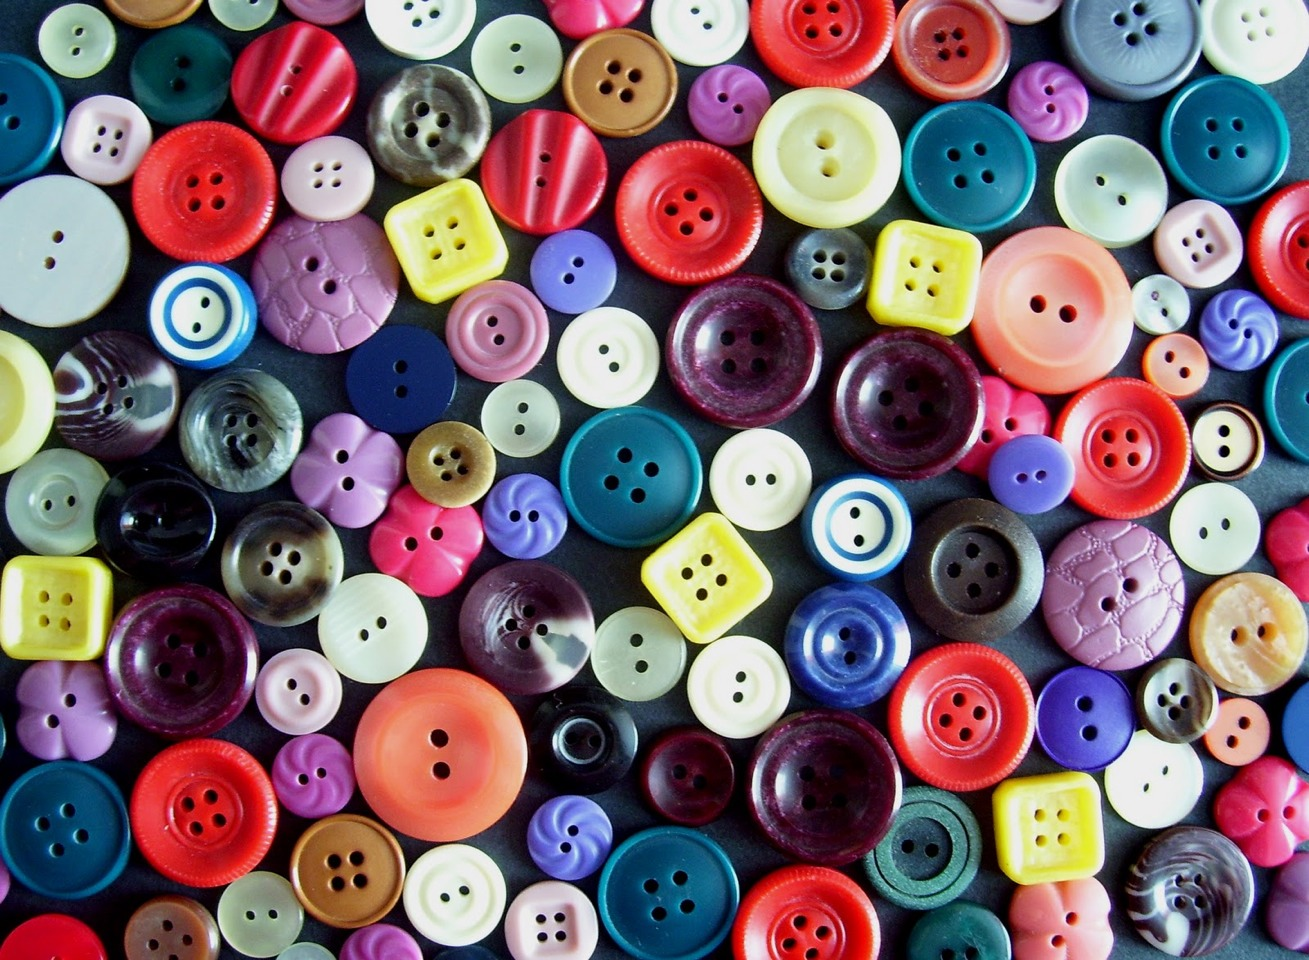 Place a toothpick between the button and the fabric while sewing. This will create a bit of space so the button won't attach too tight, becoming tough to fasten!